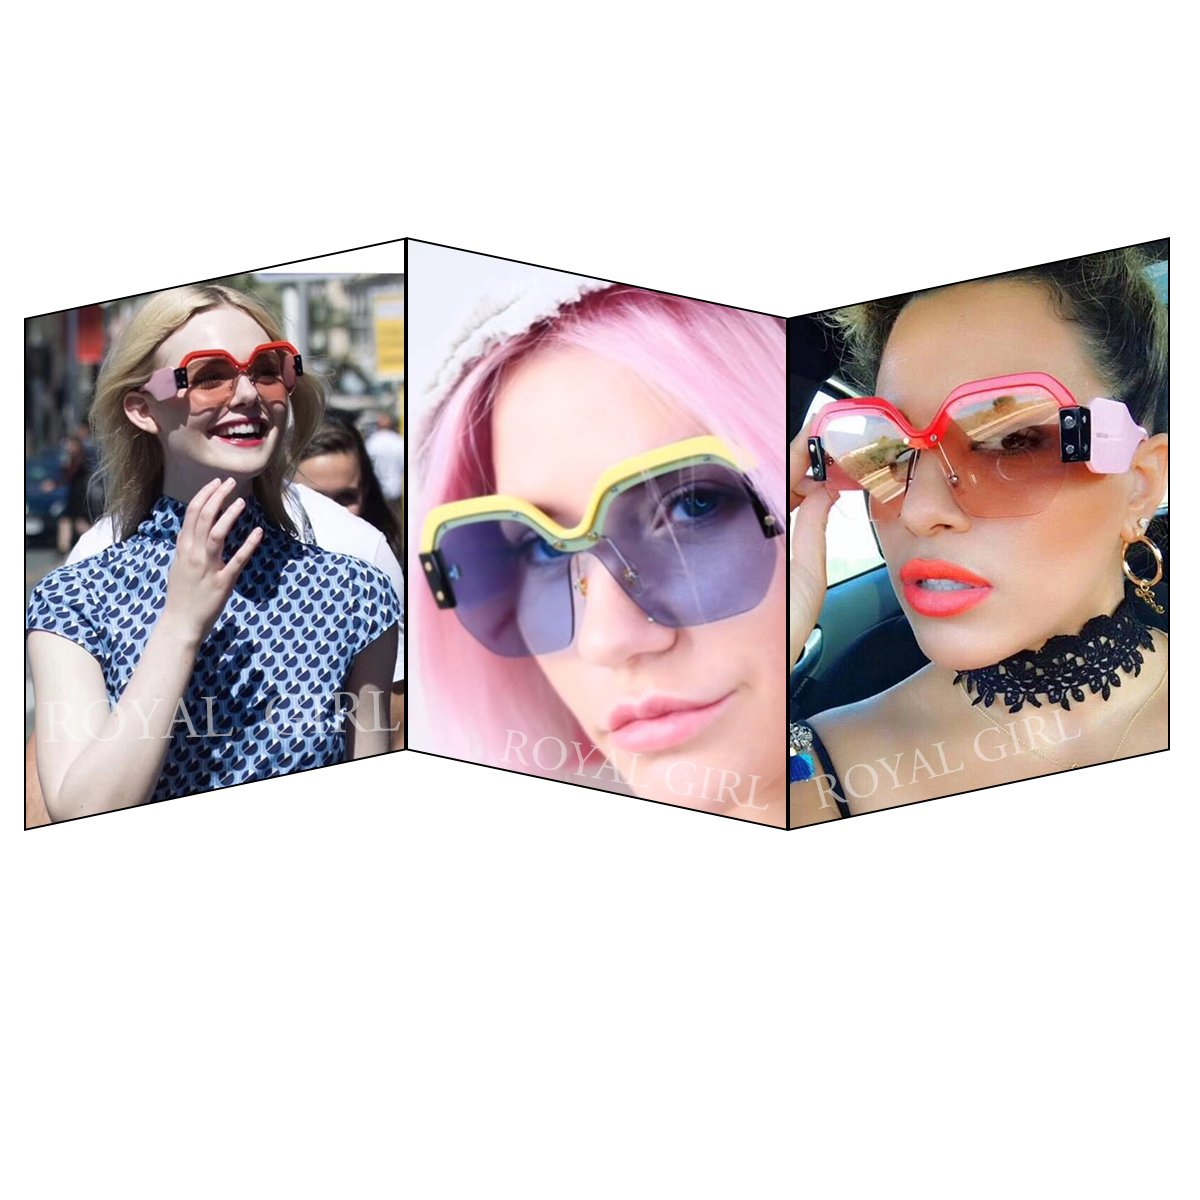 6b831fe2f8ce ROYAL GIRL Semi Rimless Sunglasses for Women Trendy Candy Colorful Designer  Half Frame Fashion Shades (Pink-Red, 57): Amazon.ca: Clothing & Accessories